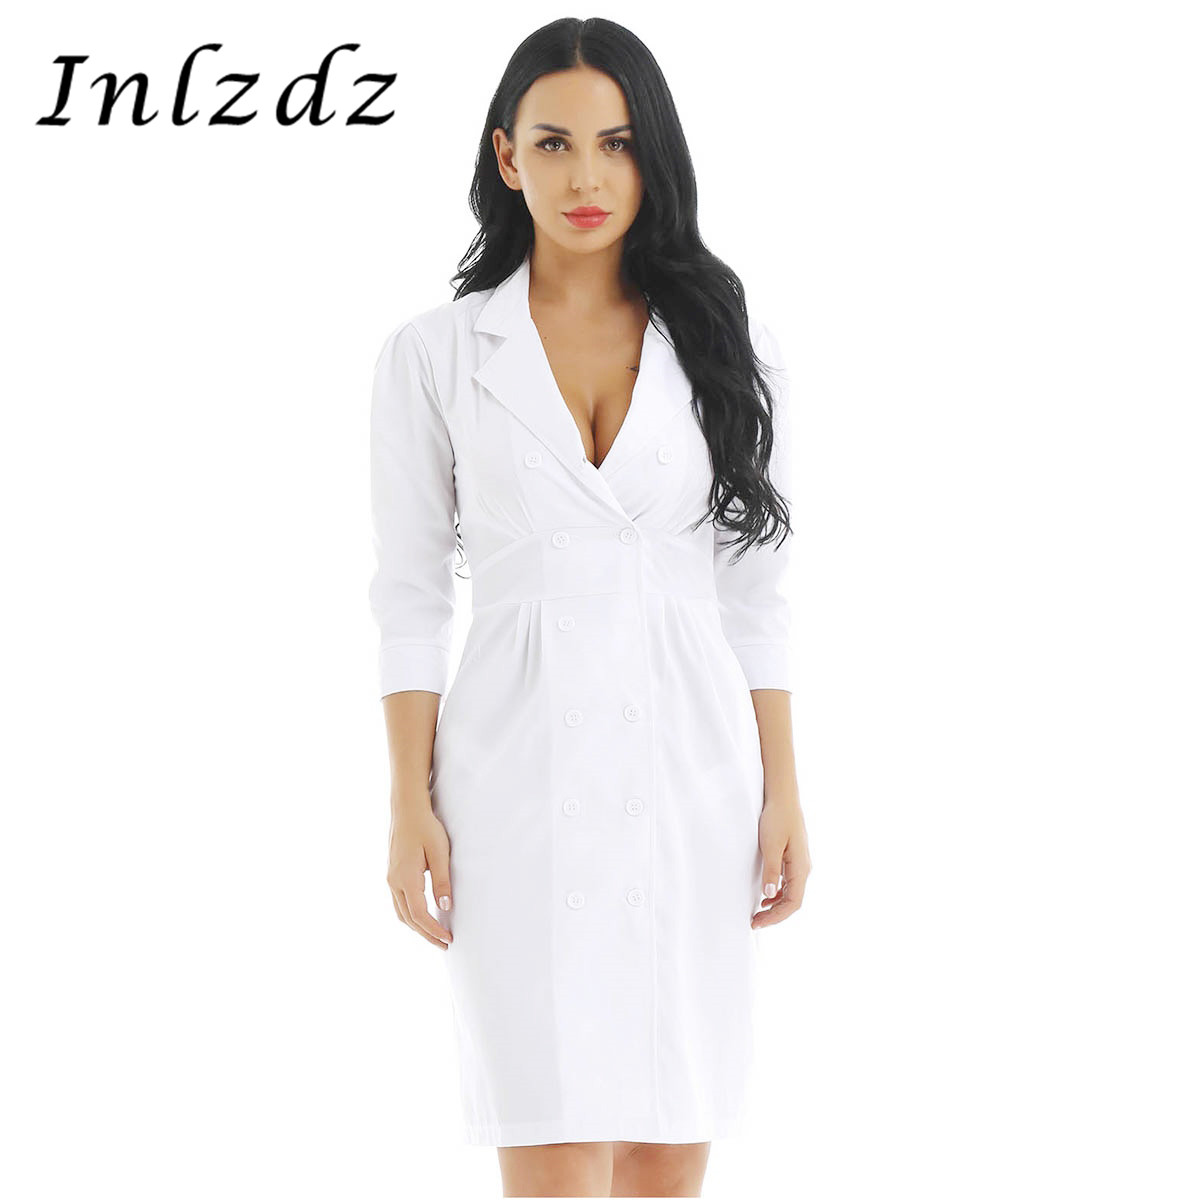 Women's Medical Uniform Dress Doctor's Clothes Lapel Collar Scrubs White Medical Suit Medical Clothing Lab Nurse Doctor Dress